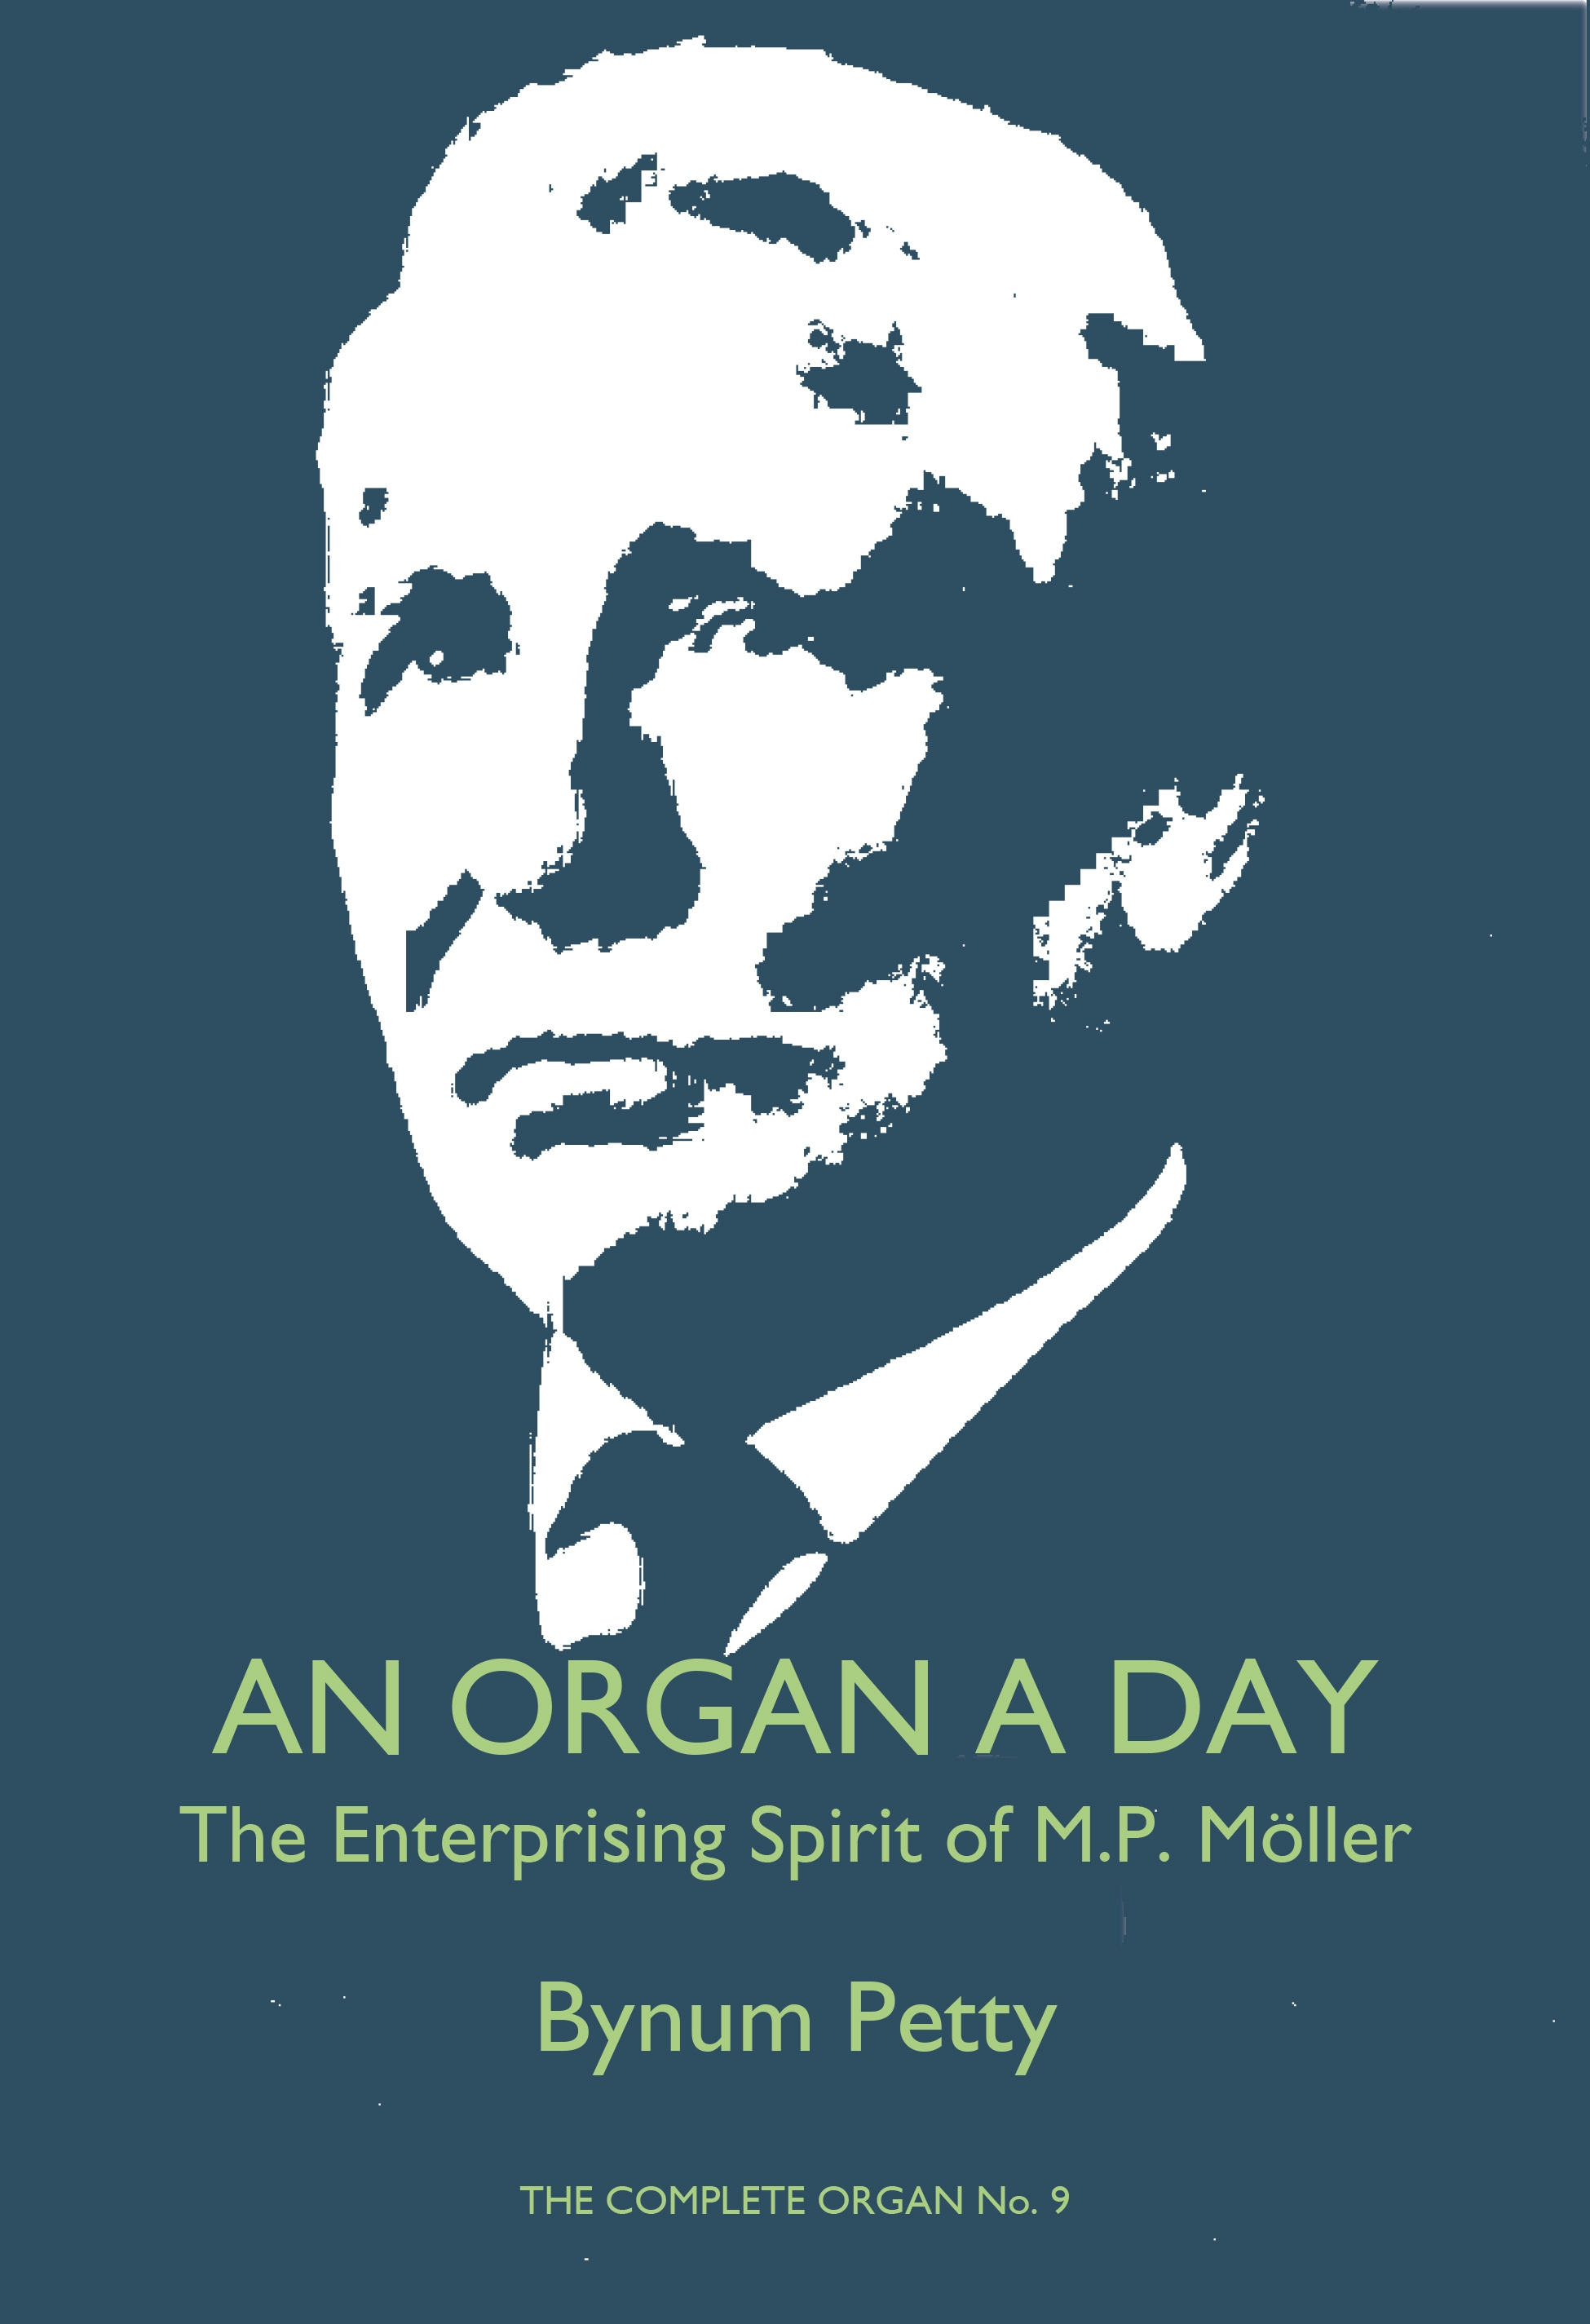 An Organ A Day